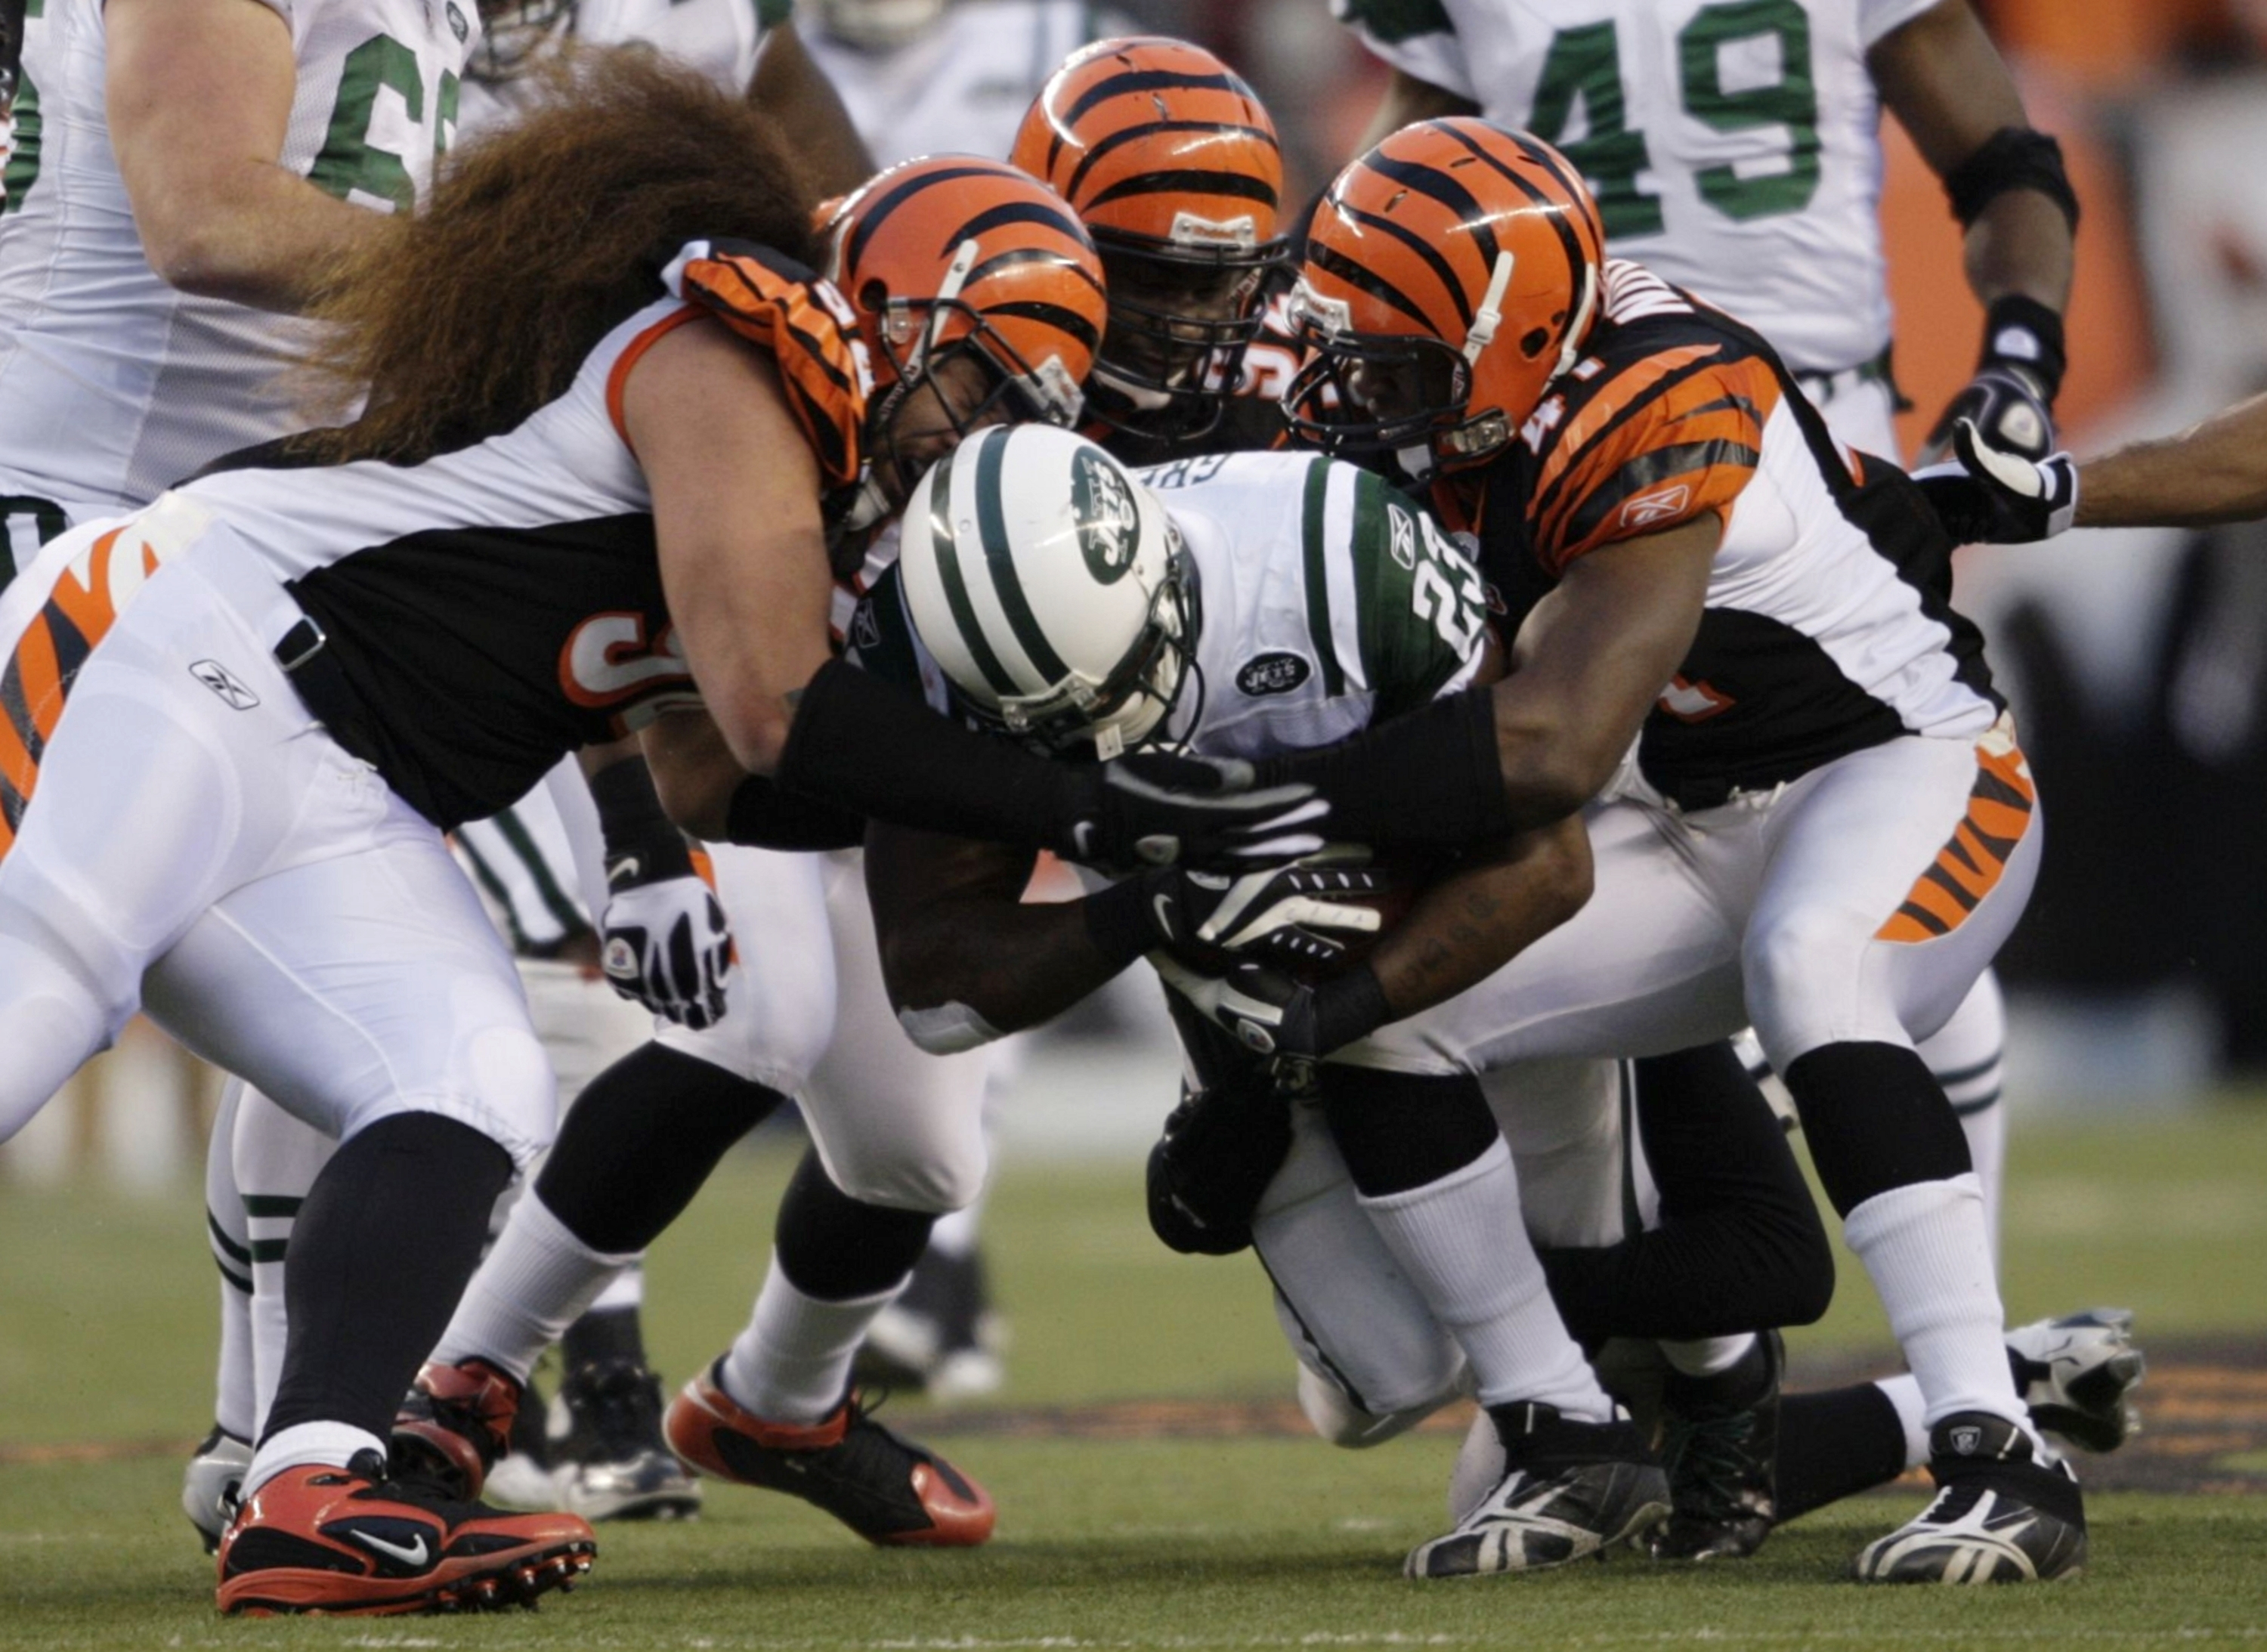 CINCINNATI - JANUARY 9: Running back Shonn Greene #23 of the New York Jets is tackled as he runs with the ball against the Cincinnati Bengals during the 2010 AFC wild-card playoff game at Paul Brown Stadium on January 9, 2010 in Cincinnati, Ohio. (Photo b